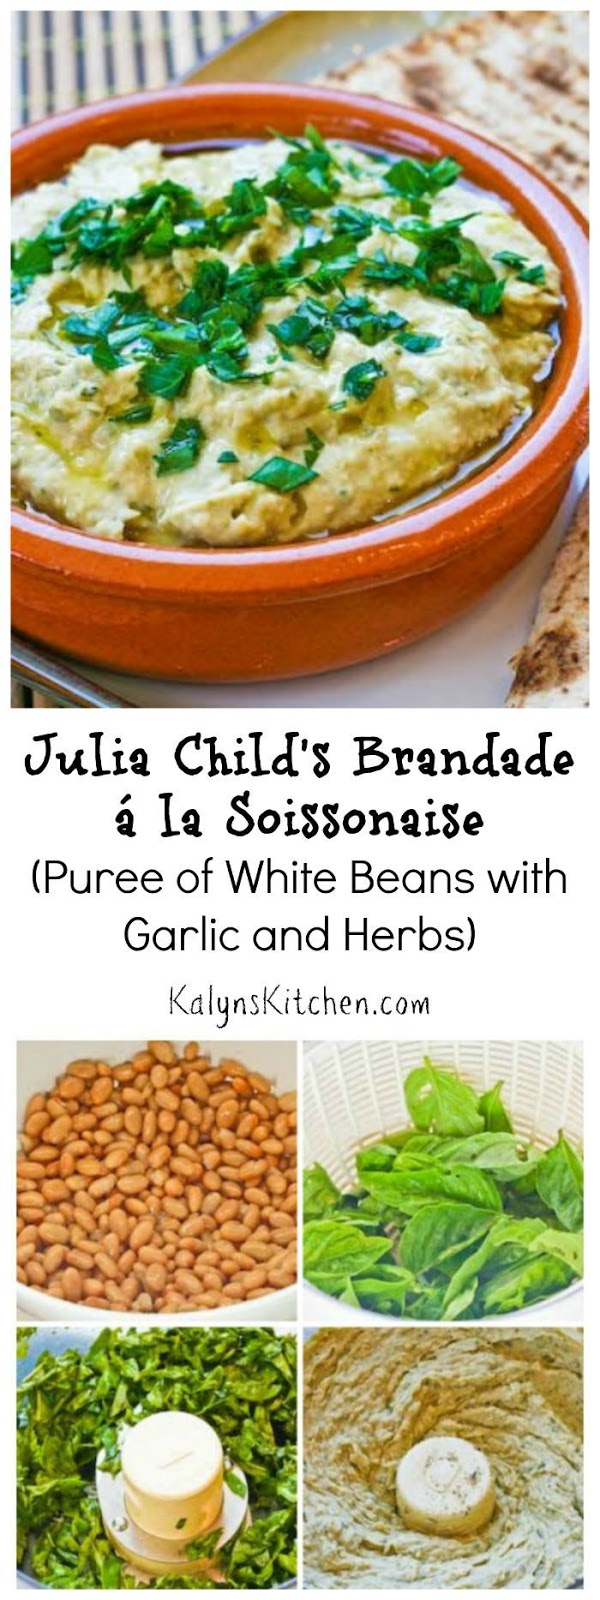 Brandade á la Soissonaise (Puree of White Beans with Garlic and Herbs ...